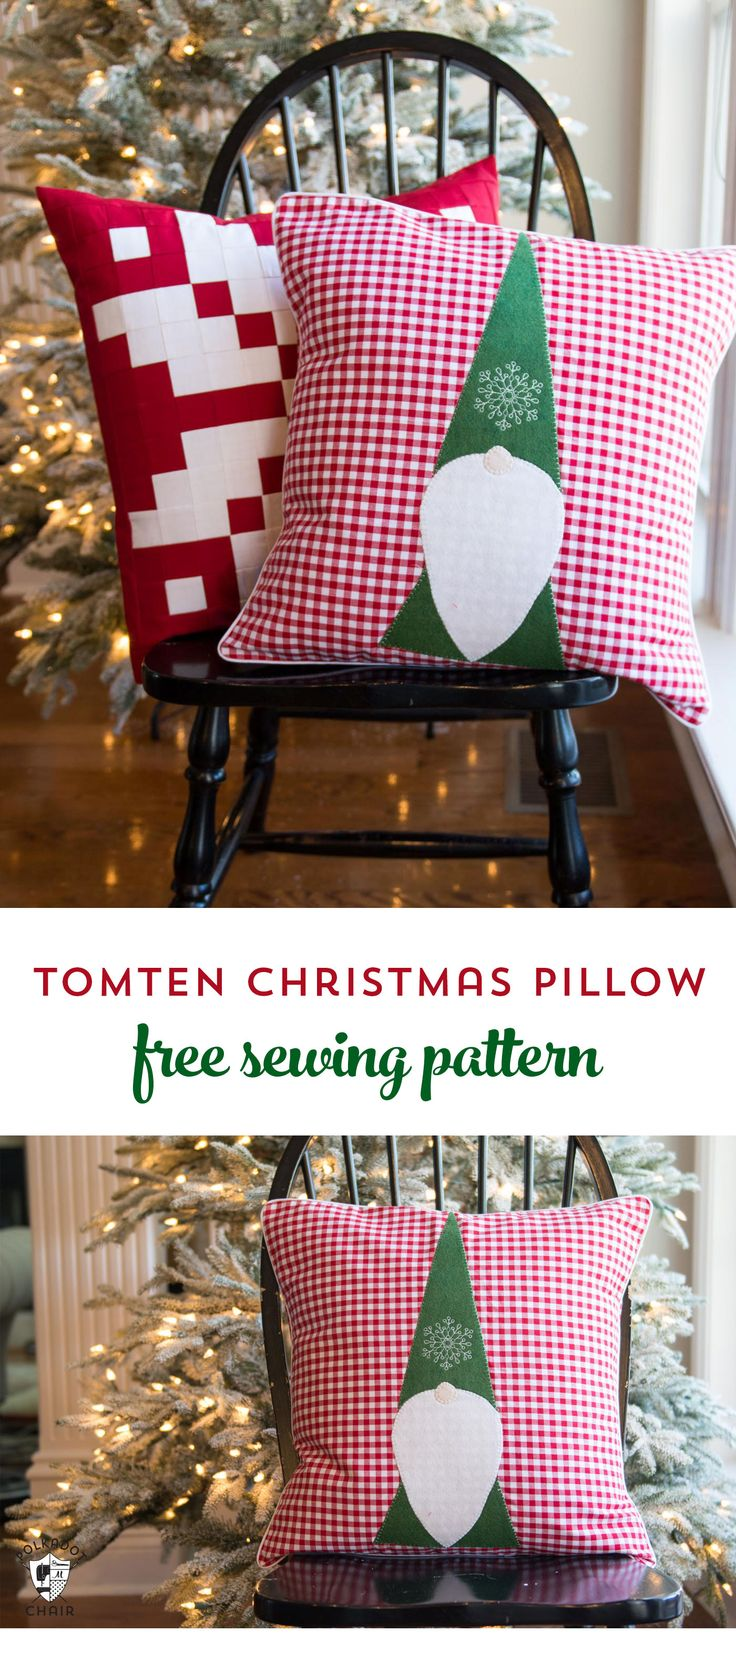 Free Sewing Pattern for a Tomten Christmas Gnome pillow - makes a cute DIY Christmas decoration!! #christmas #christmassewing #sewing #freesewingpattern #christmaspillow #DIY #freepattern #gnomepillow #gnomepattern